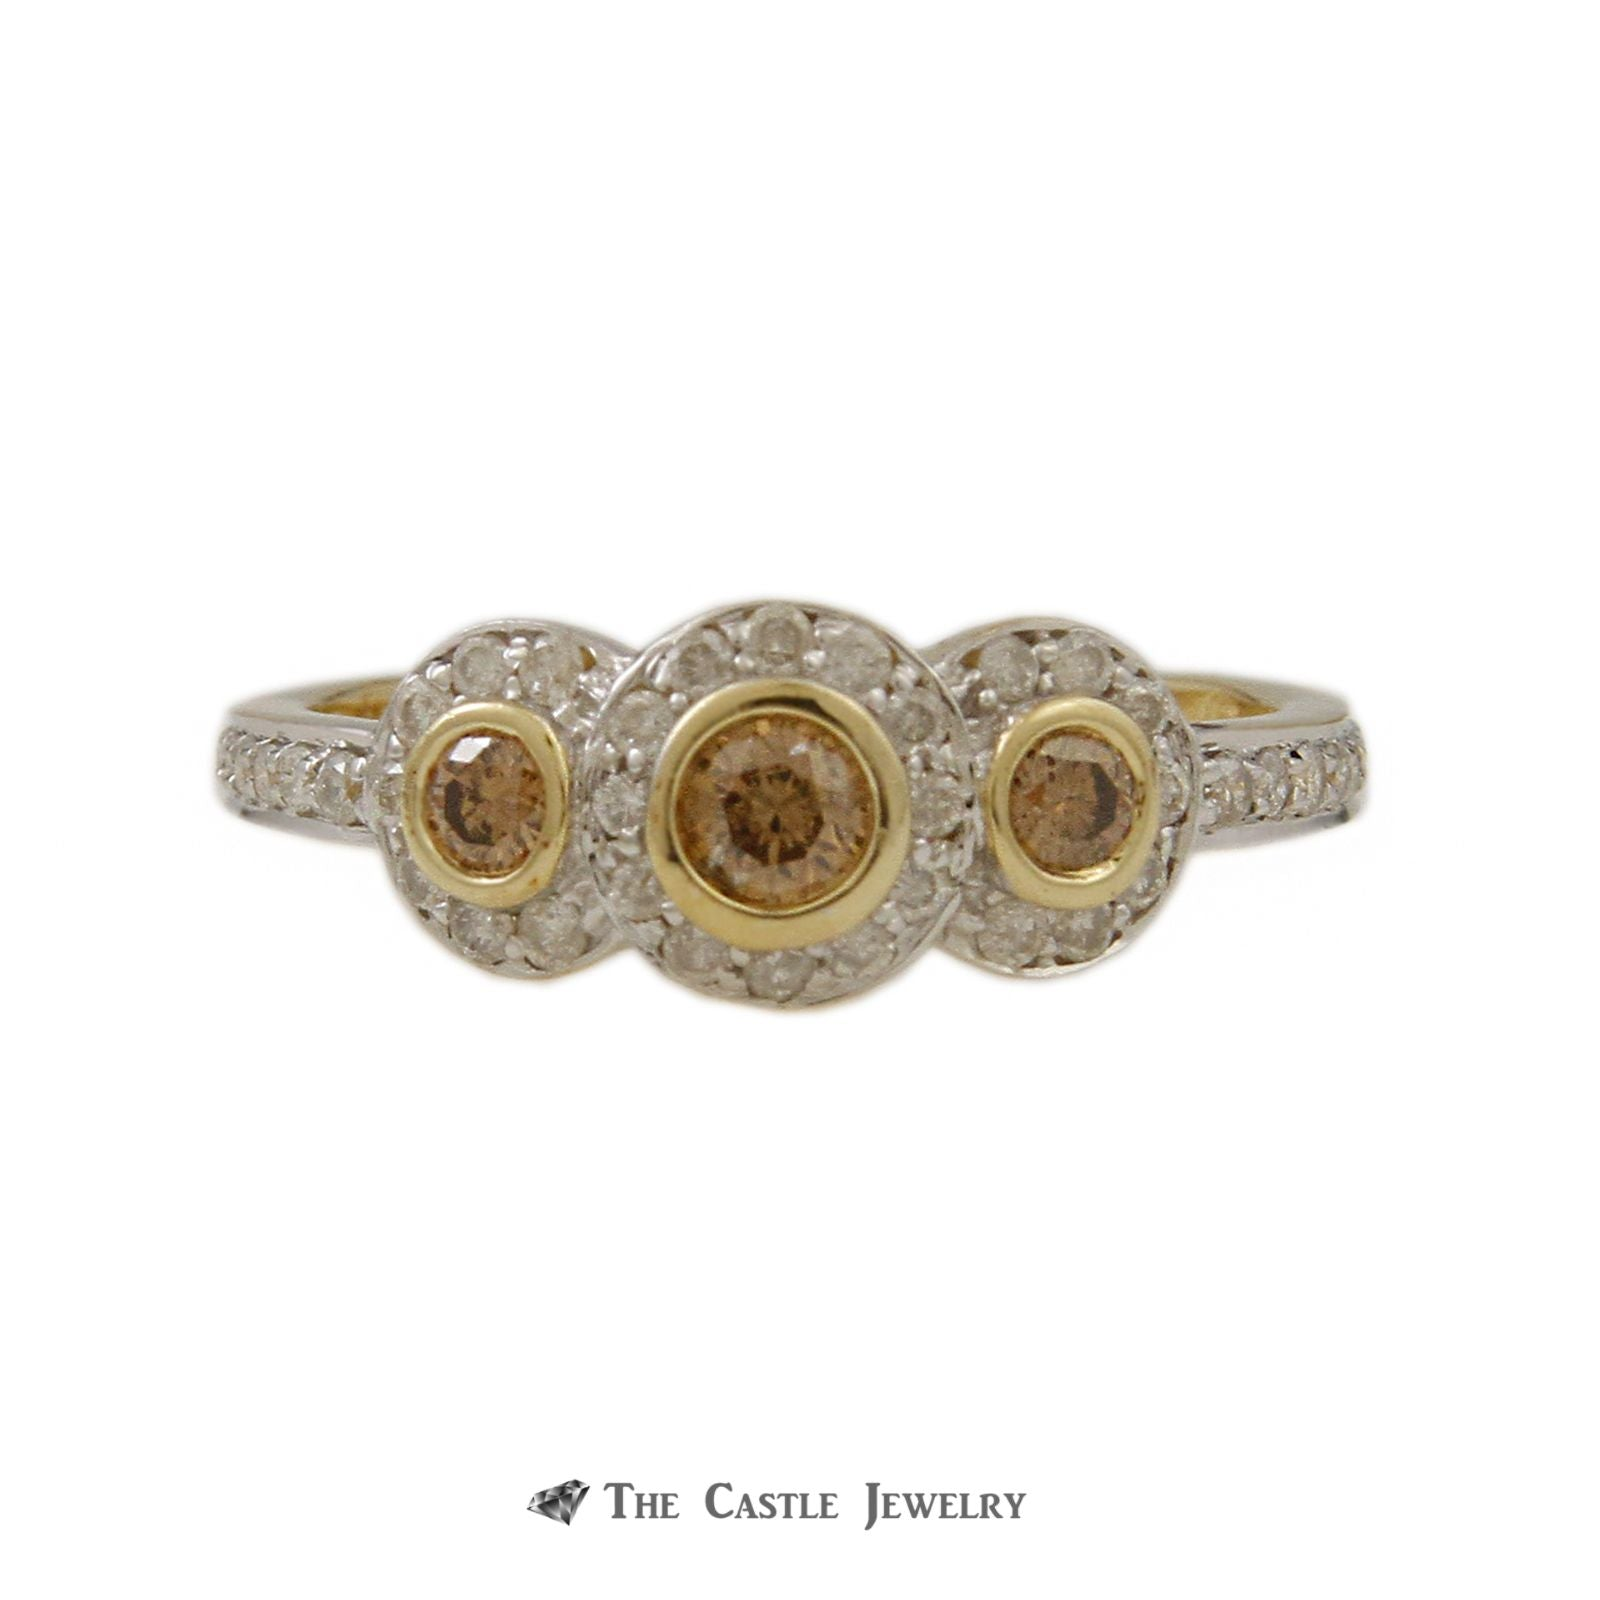 Bezel Set Champagne Diamond 3 Stone Ring with White Diamond Halos & Mounting in Yellow Gold